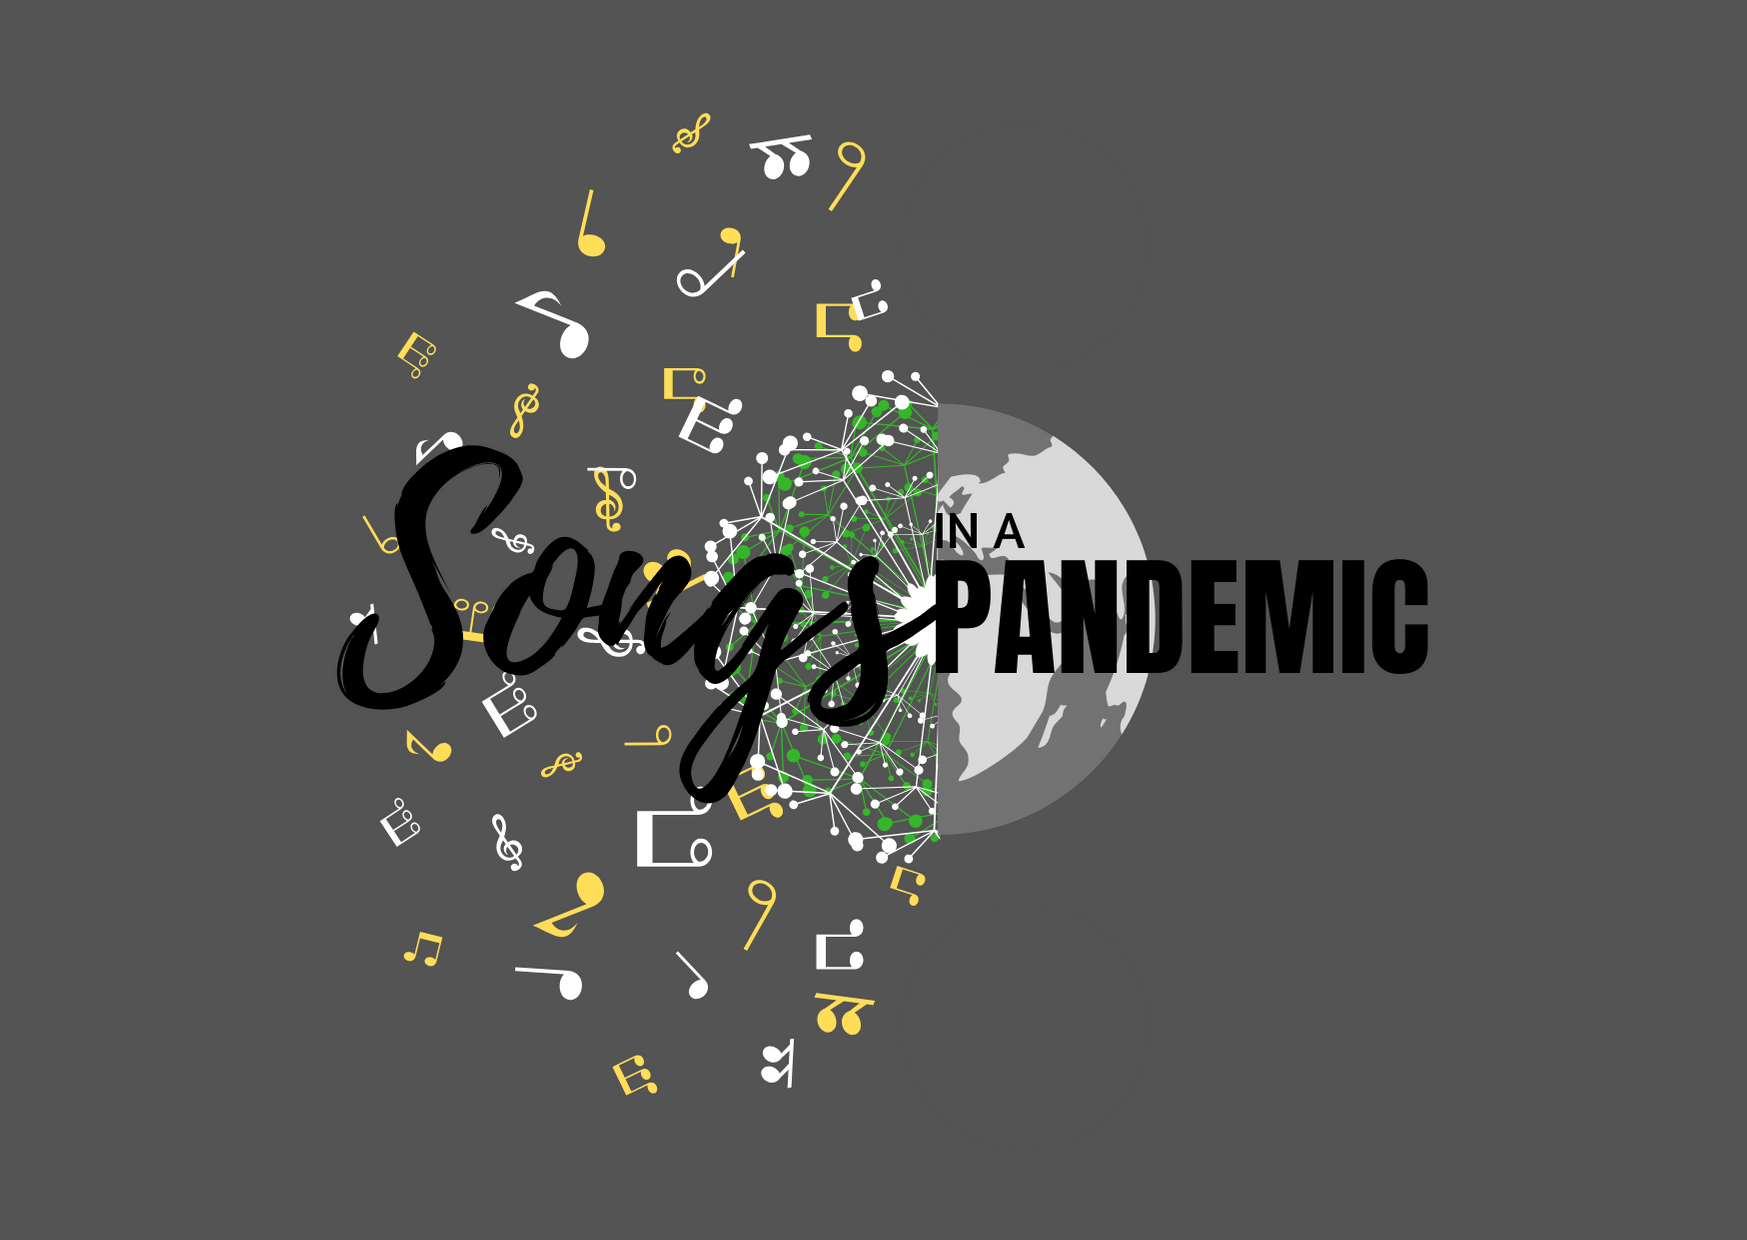 Songs in a Pandemic - Part 1, Introduction